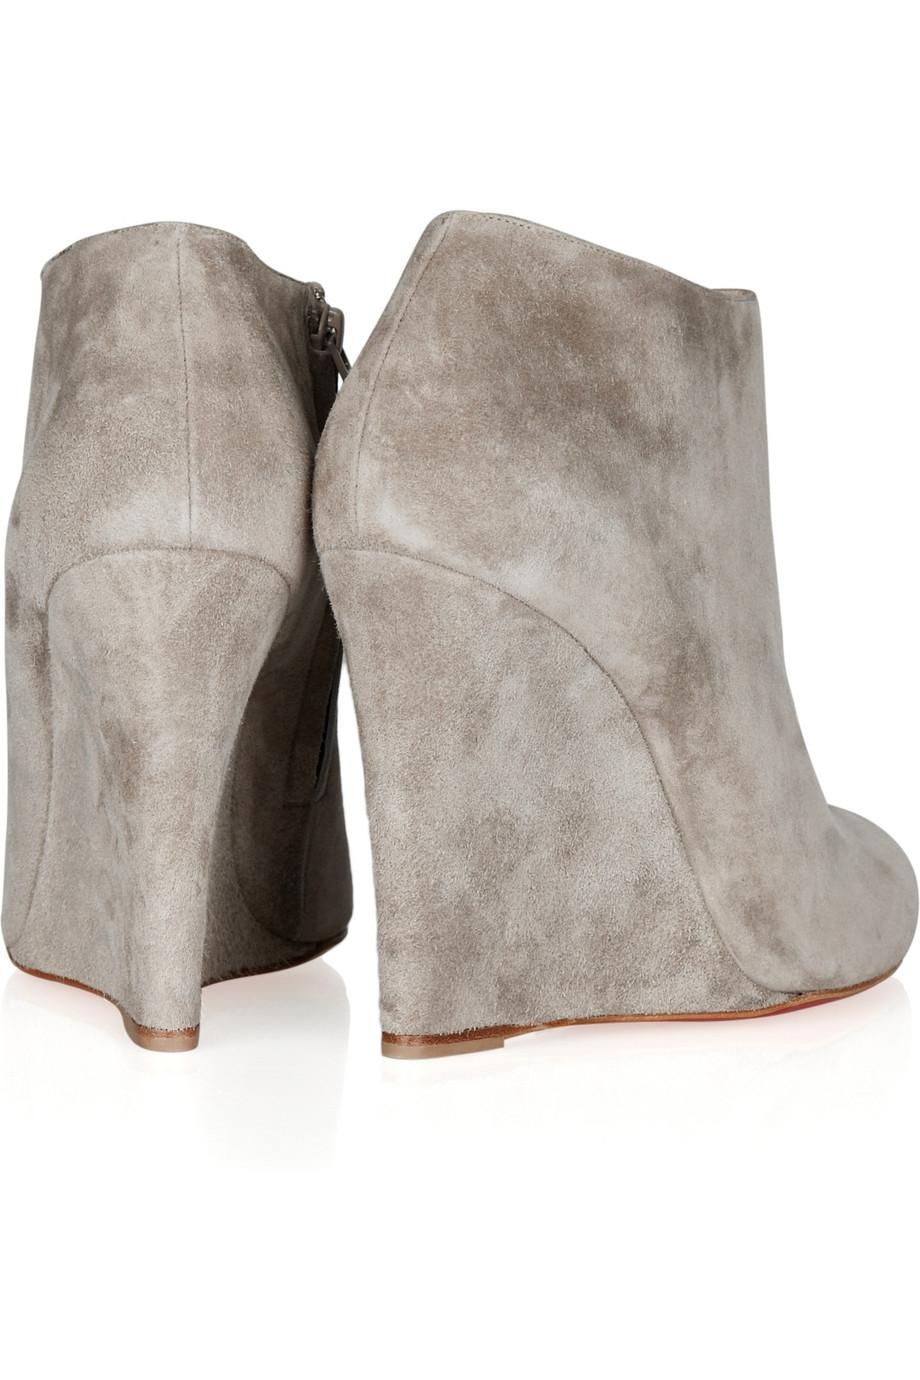 louboutin boots belle